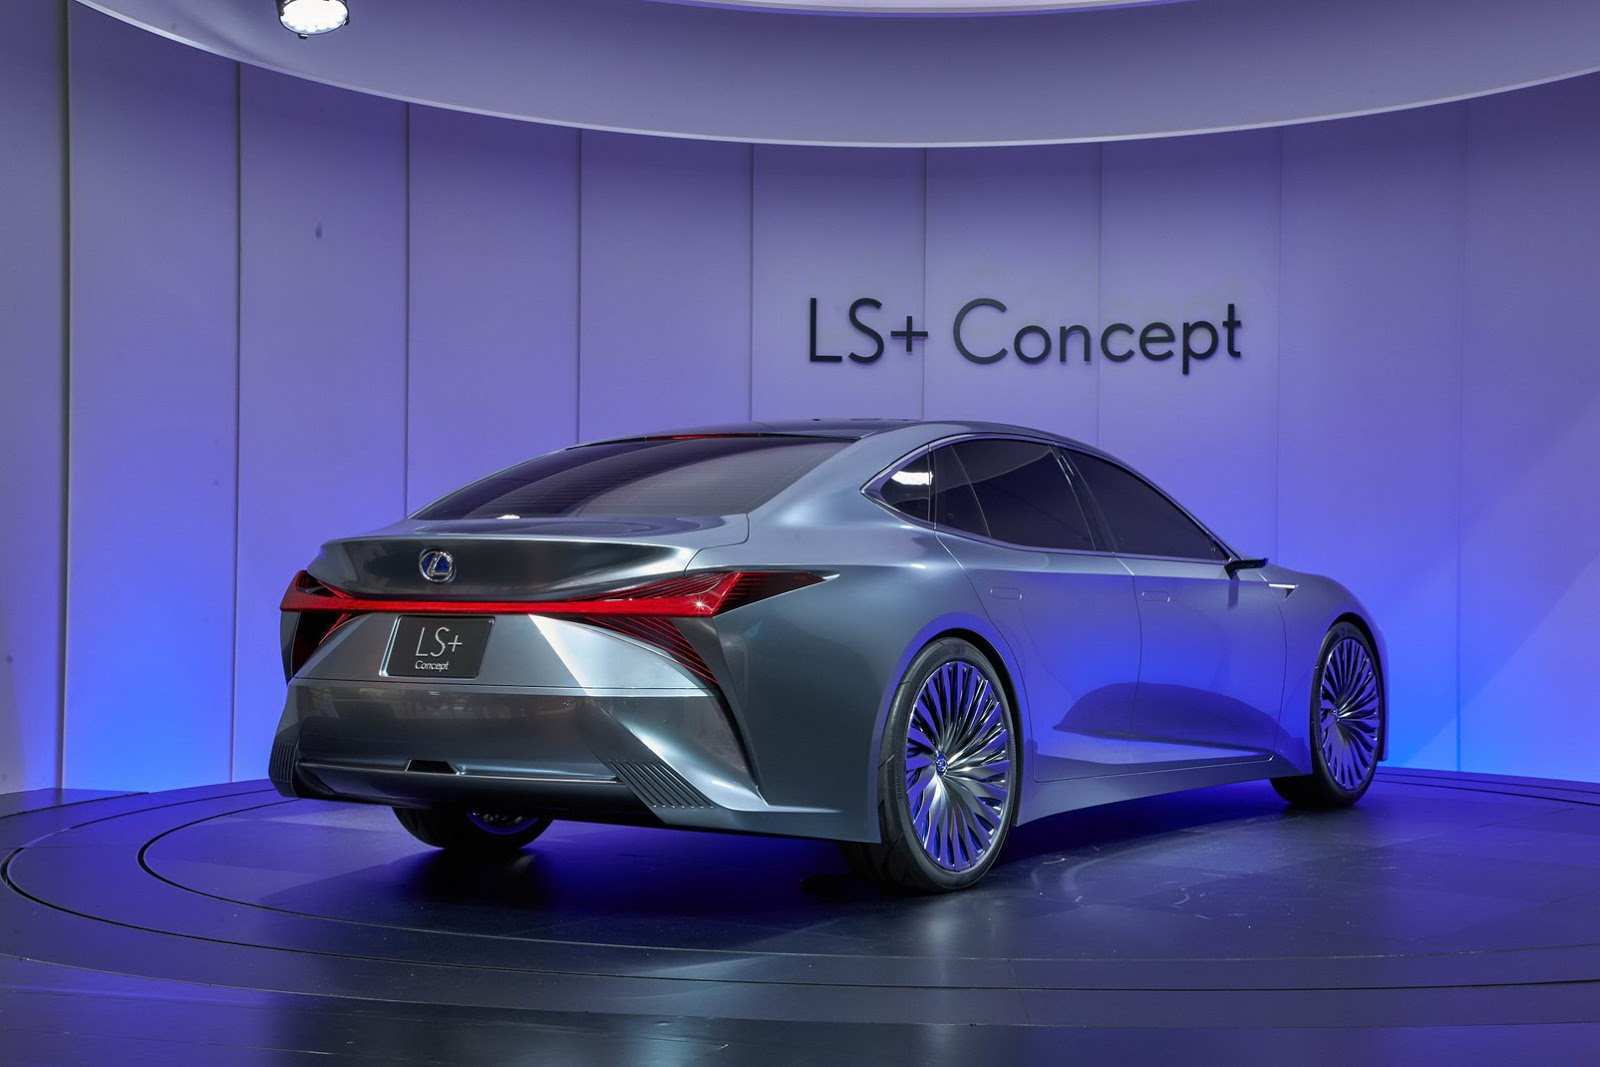 59 All New Ls Lexus 2020 Exterior and Interior with Ls Lexus 2020